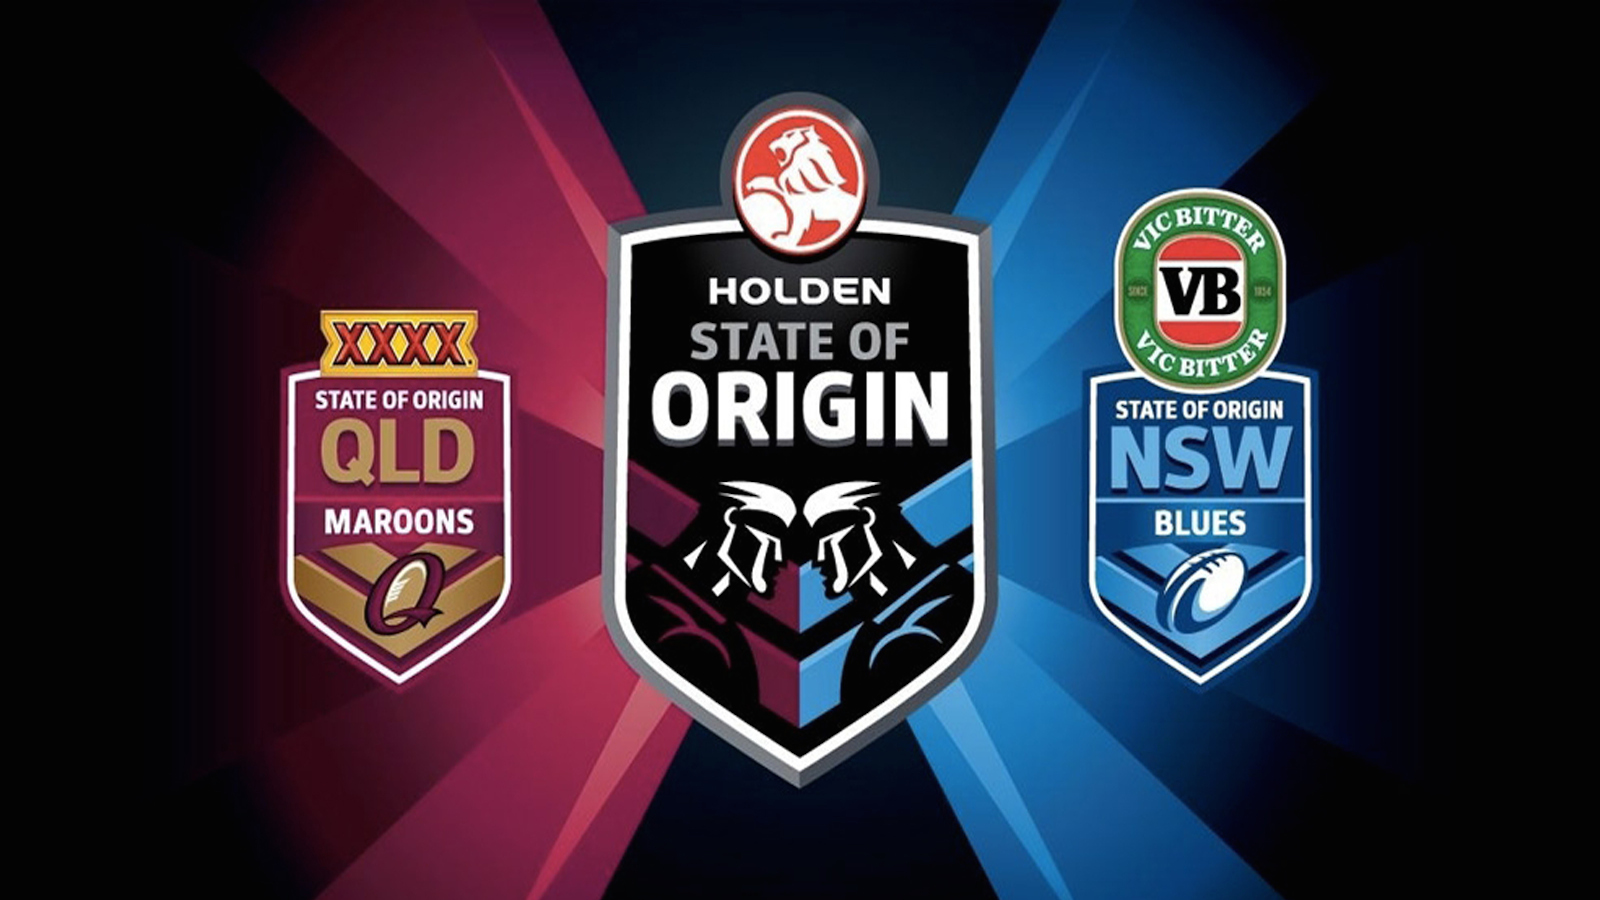 State of Origin 2019: How to watch the decider online and